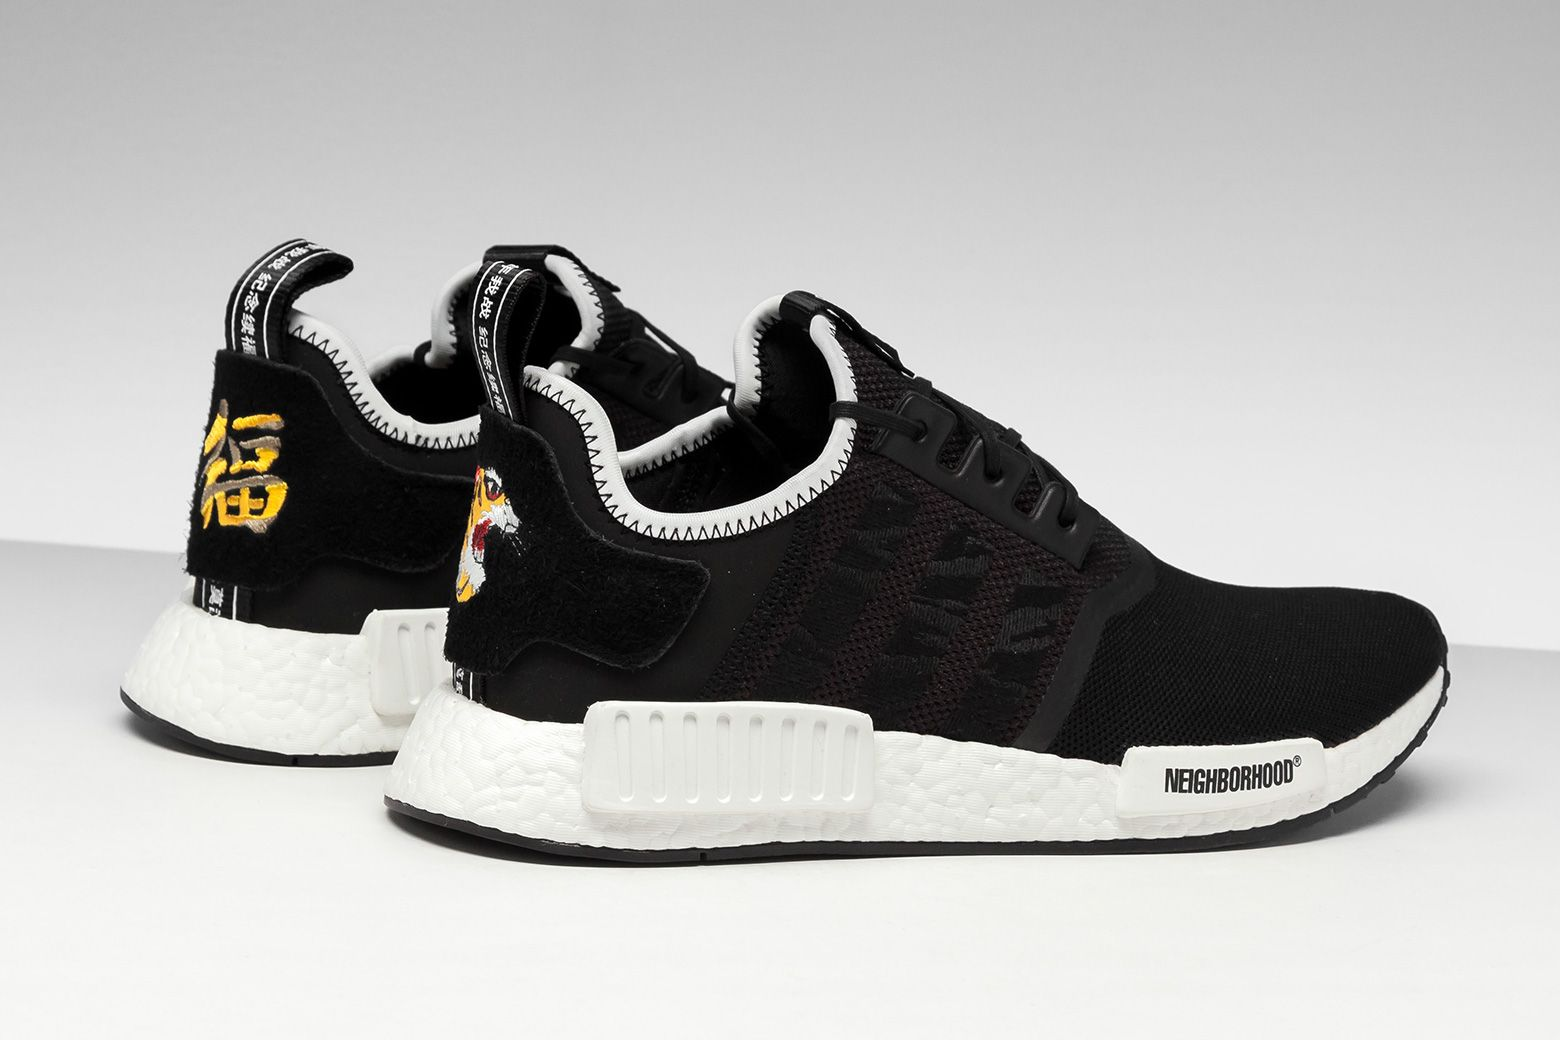 size 40 4899e 08770 adidas NMD R1 INV X NBHD Shoes - Size 4.5 | adidas NMD in ...